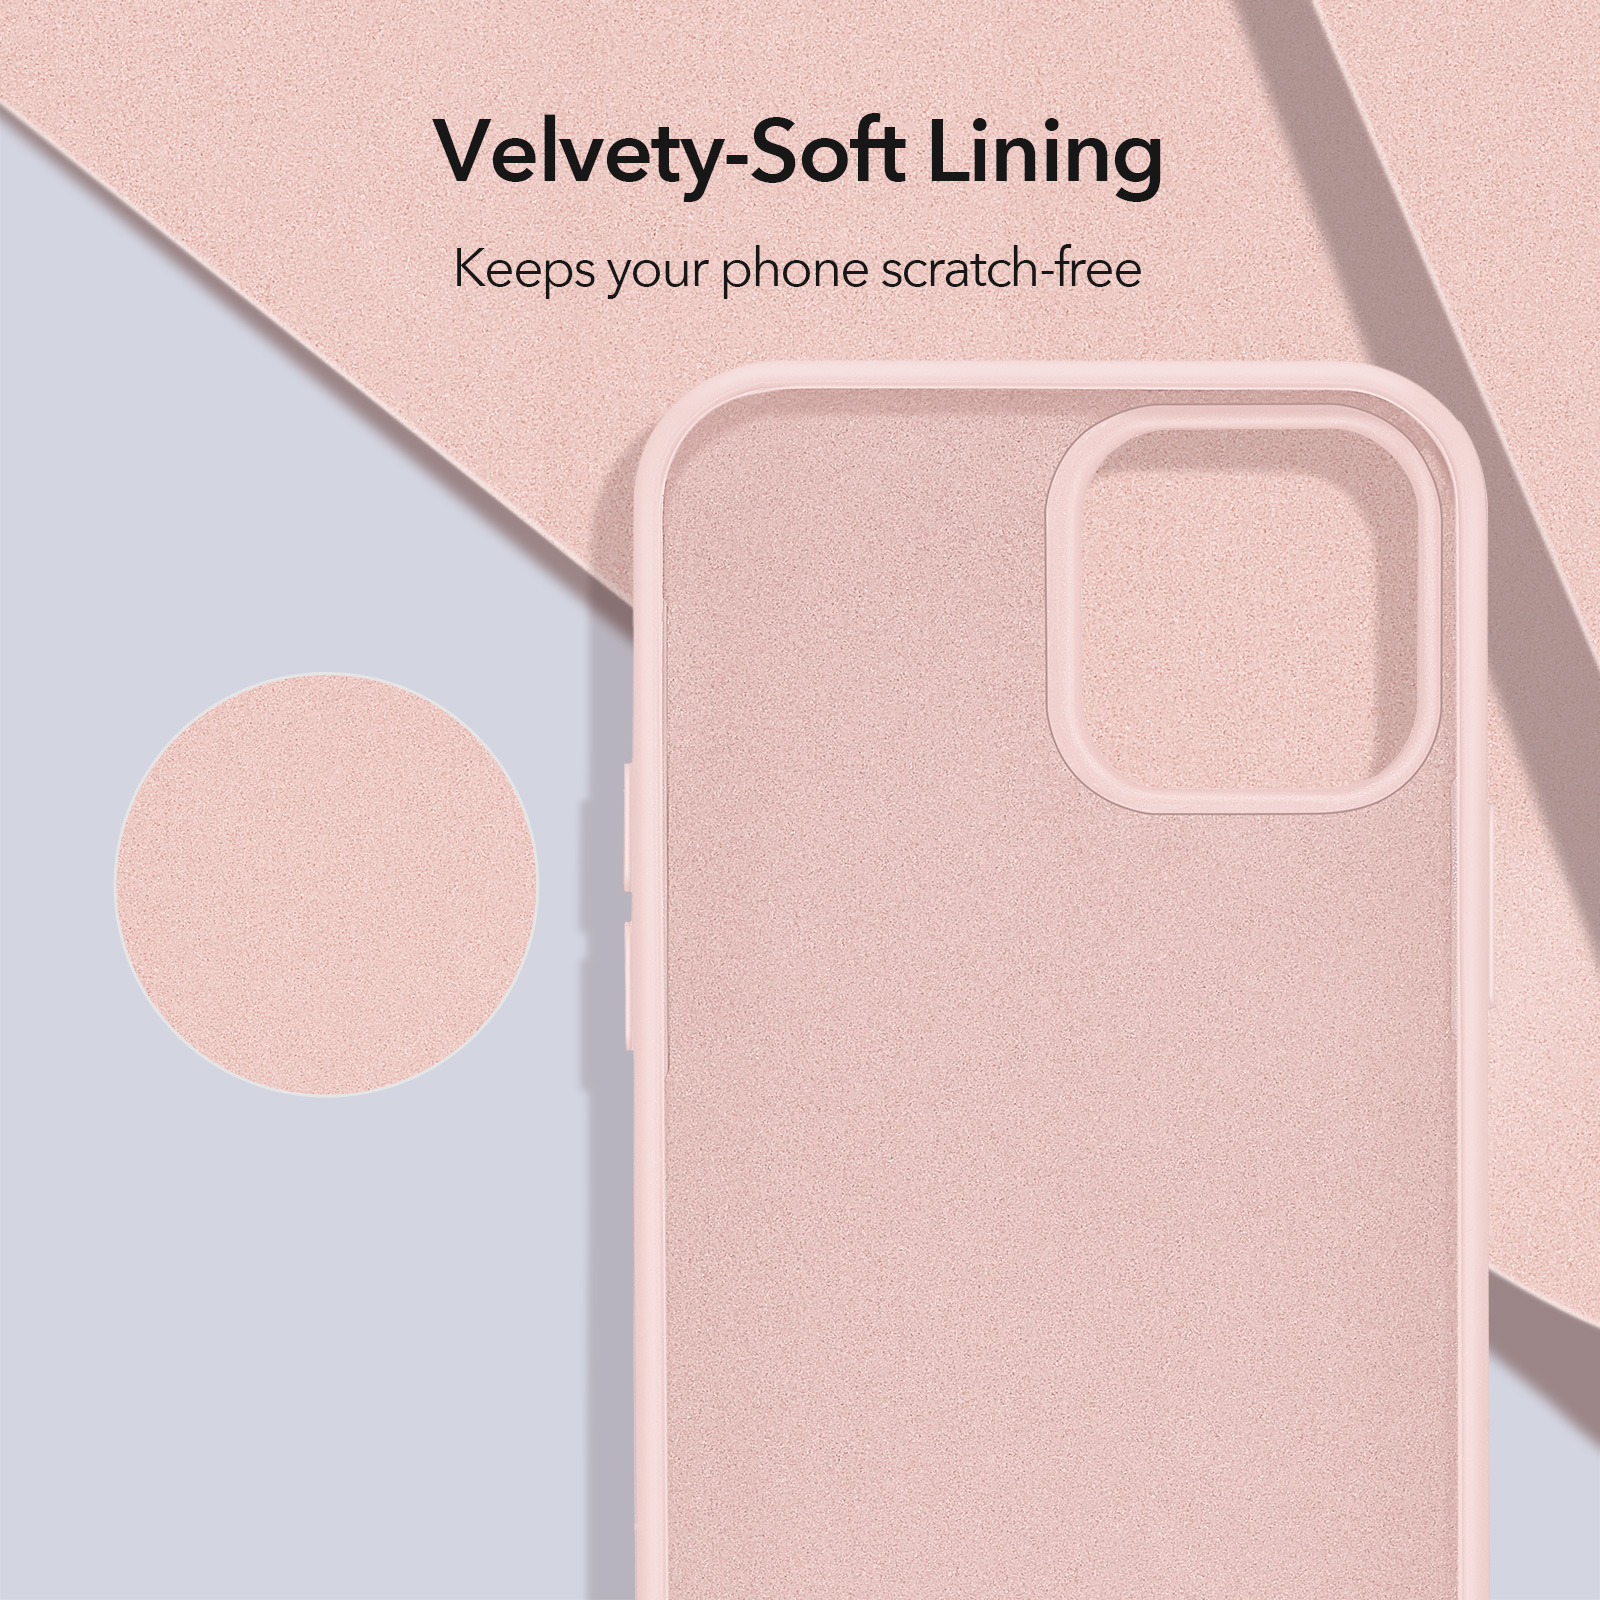 ESR Soft Silicone velvety soft lining Case Sand Pink for iPhone 12 Pro